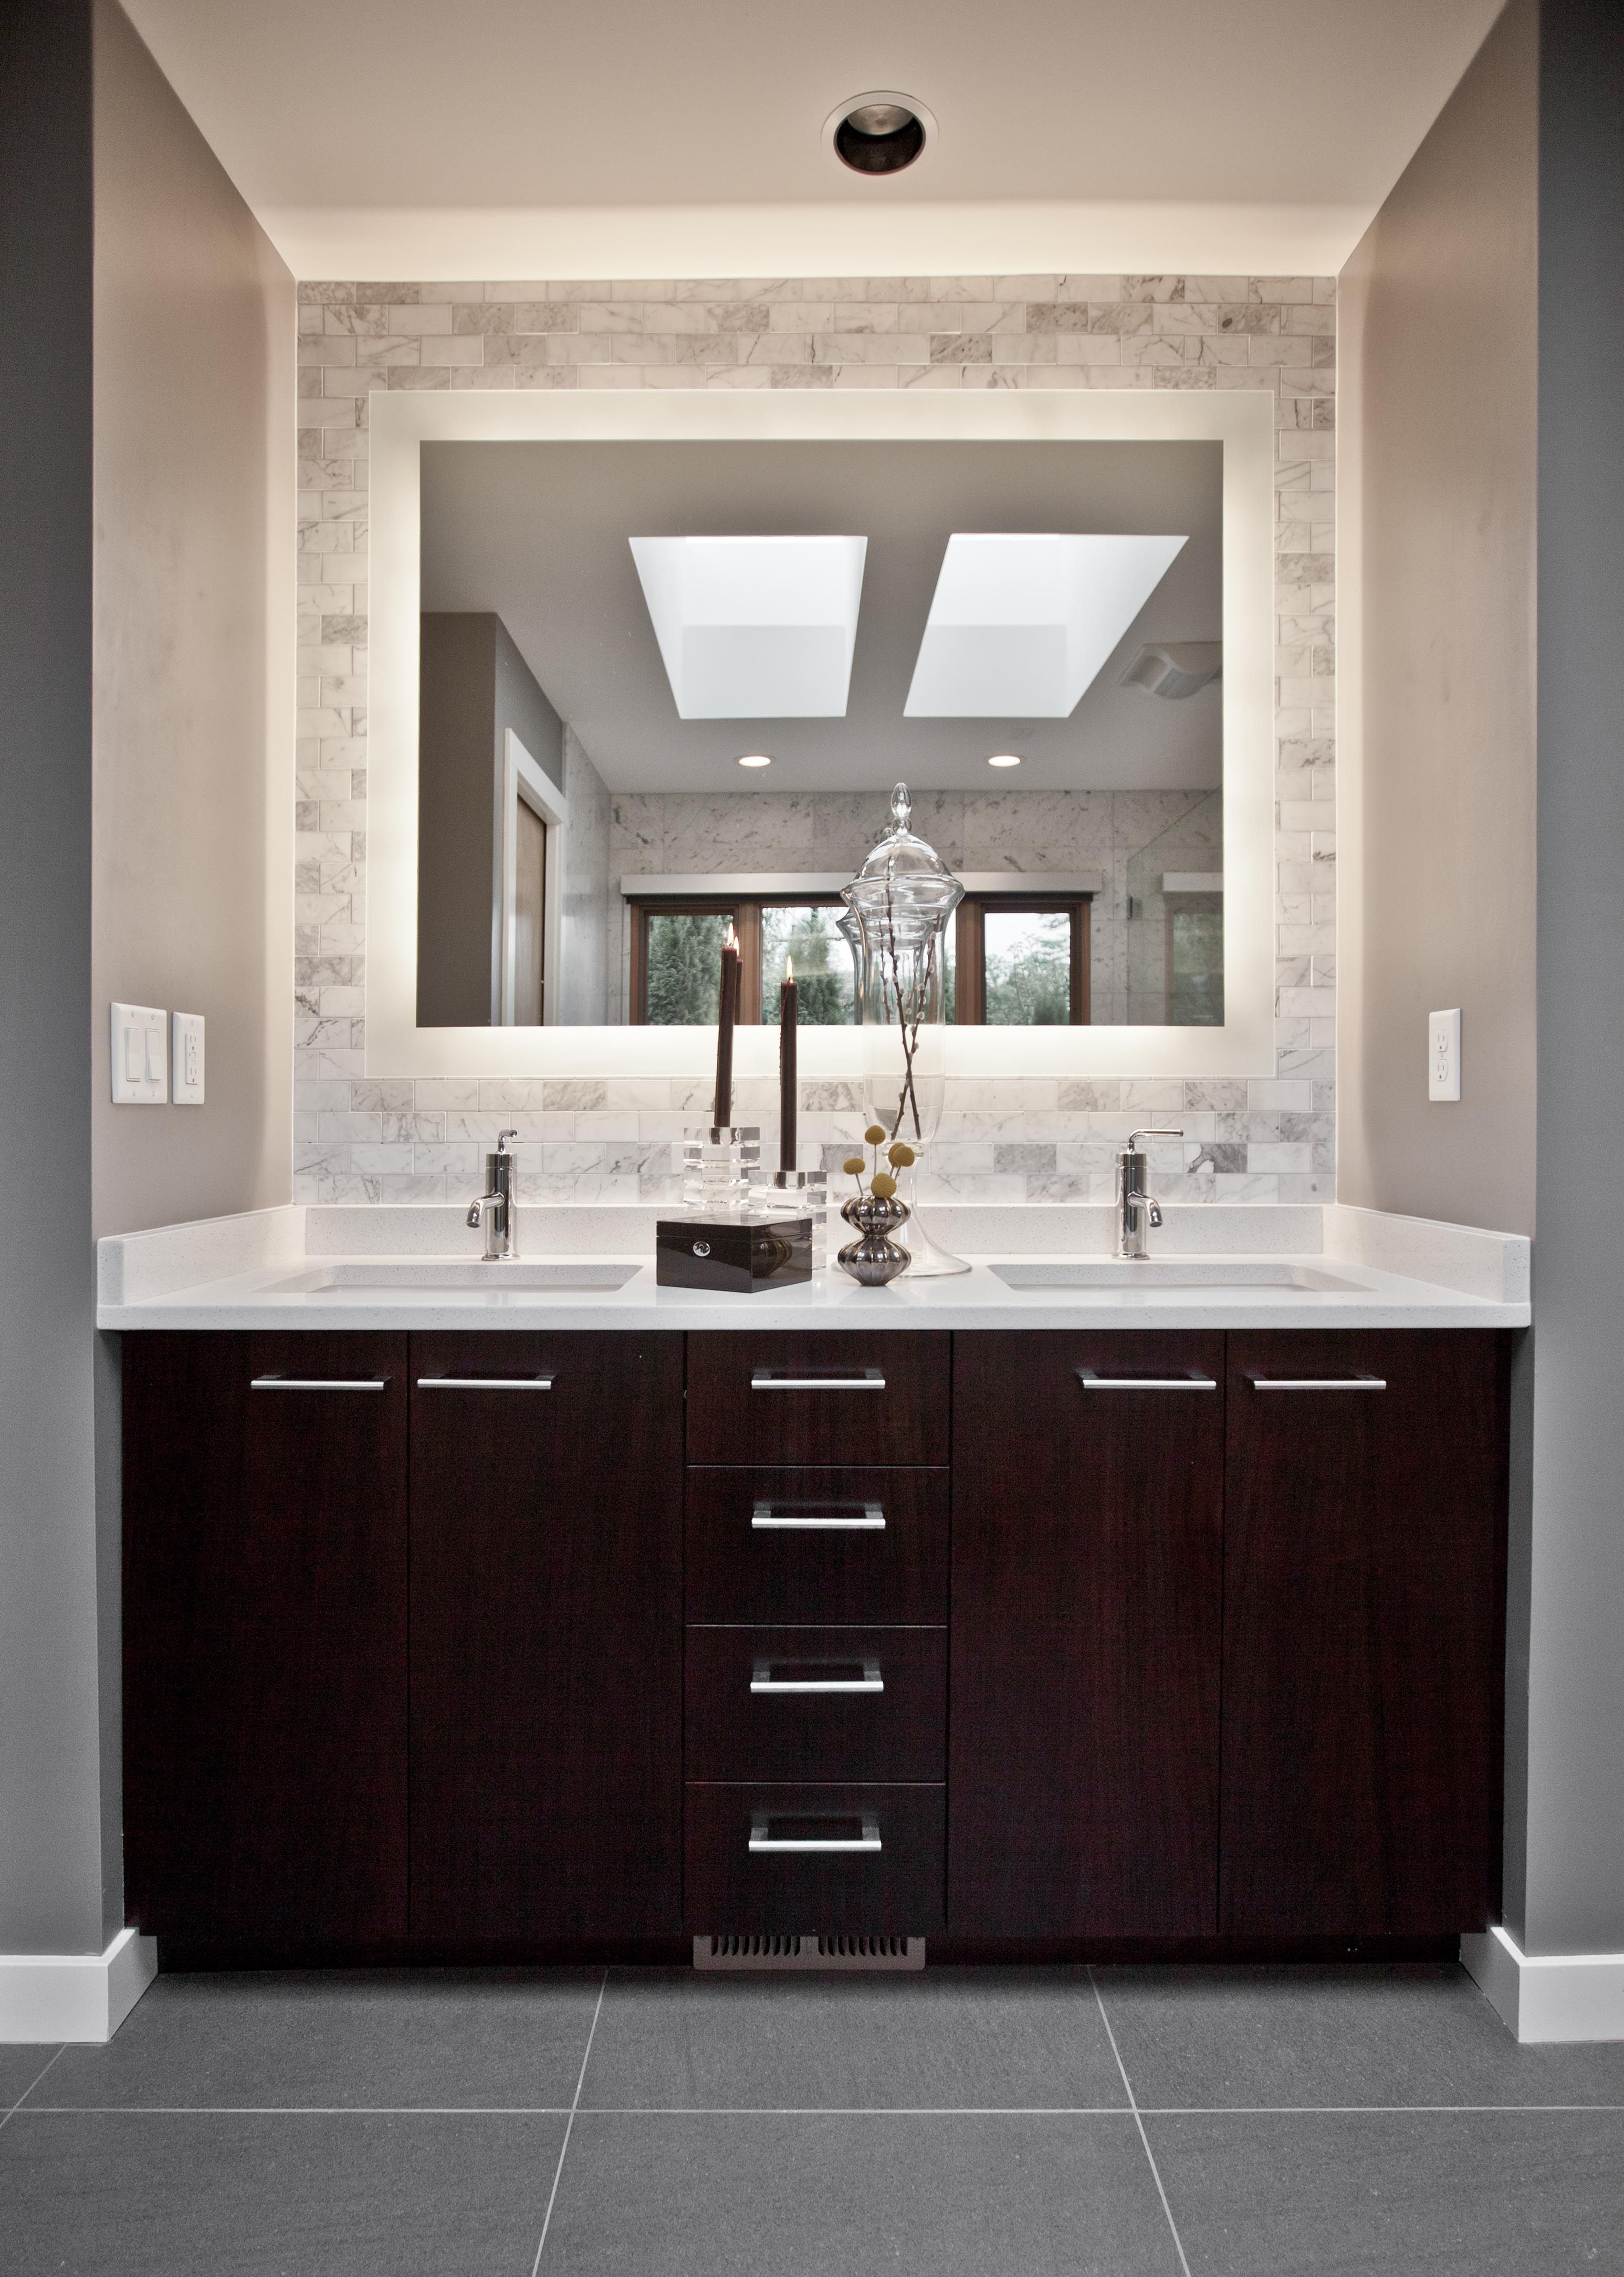 Best 25 Backlit mirror ideas on Pinterest  Mirror with